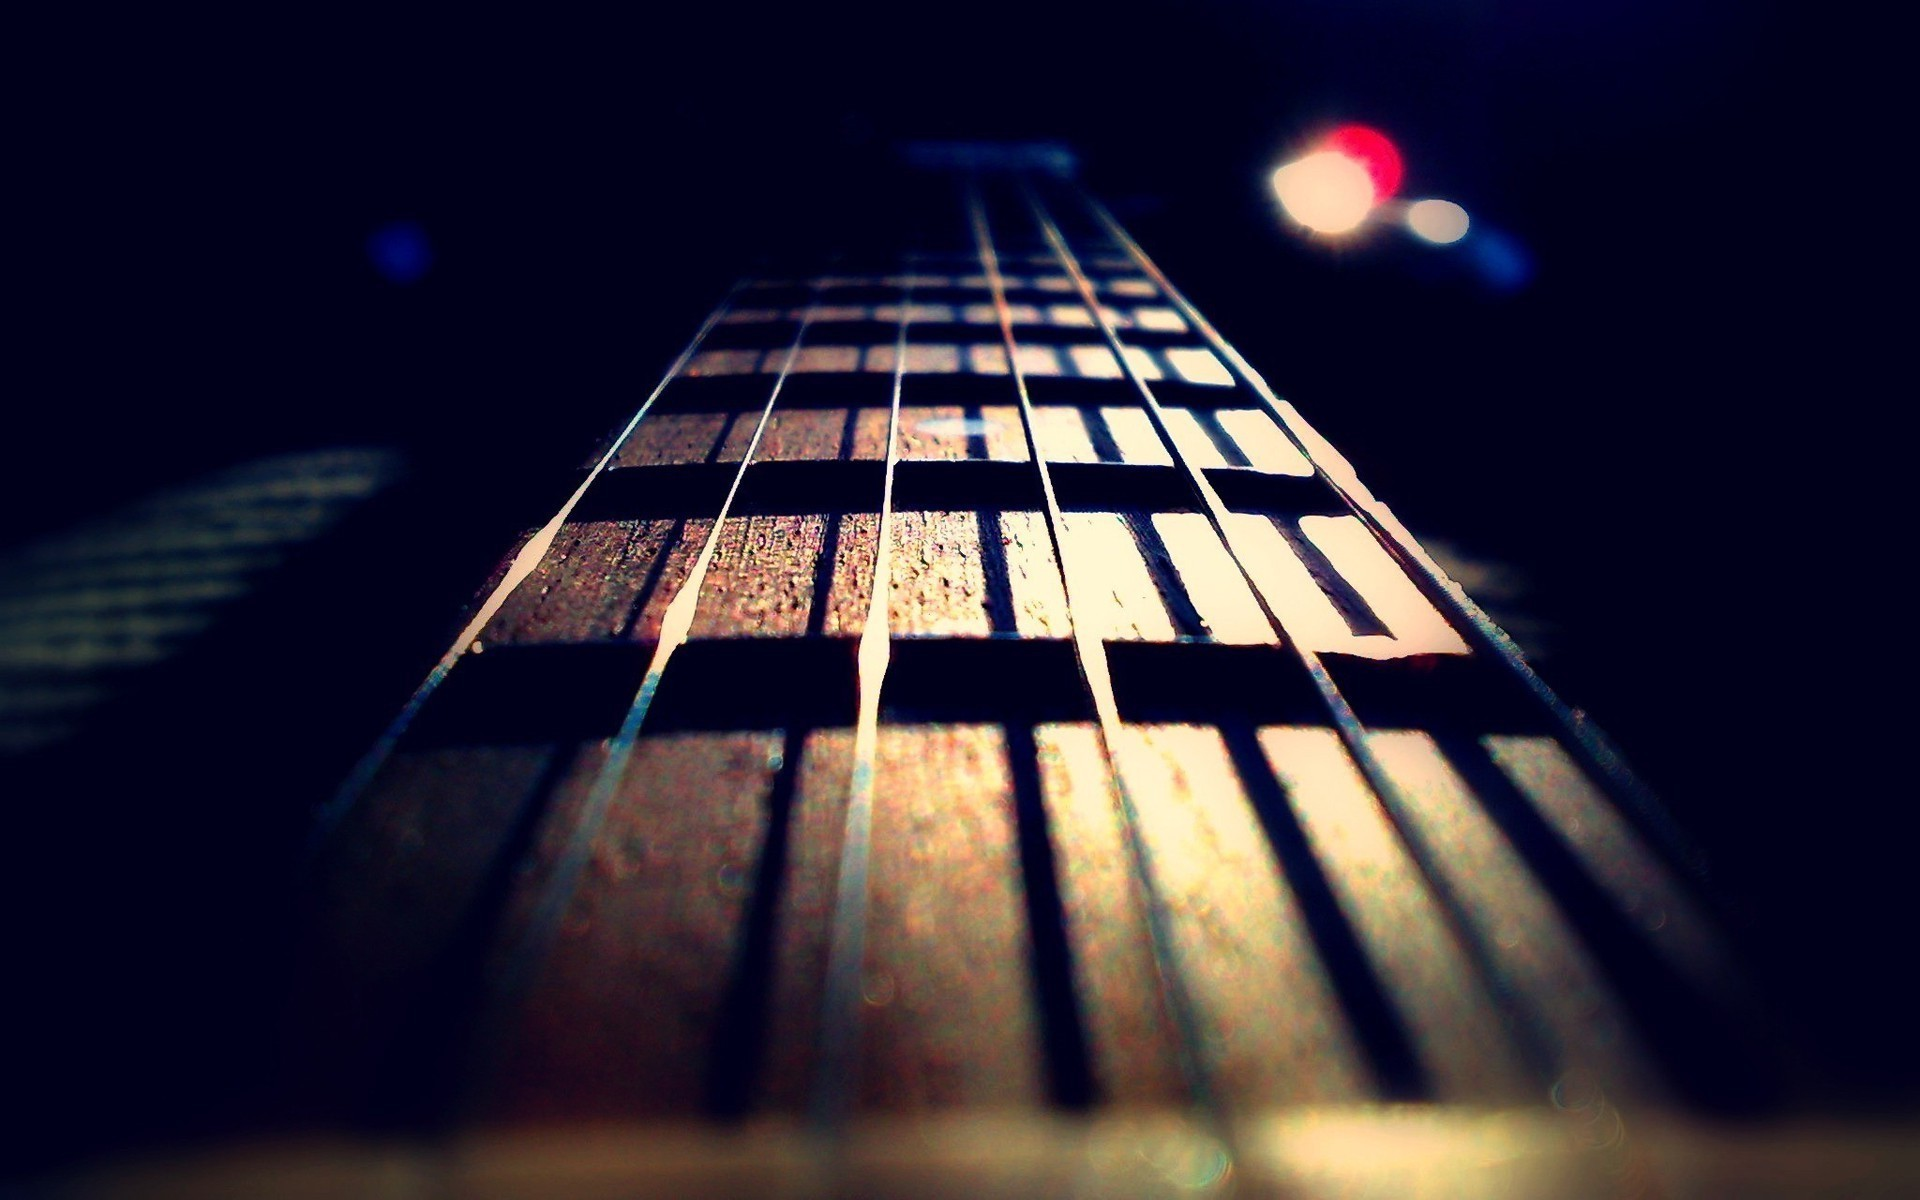 Fender guitar wallpaper 59 images for Where to get wallpaper